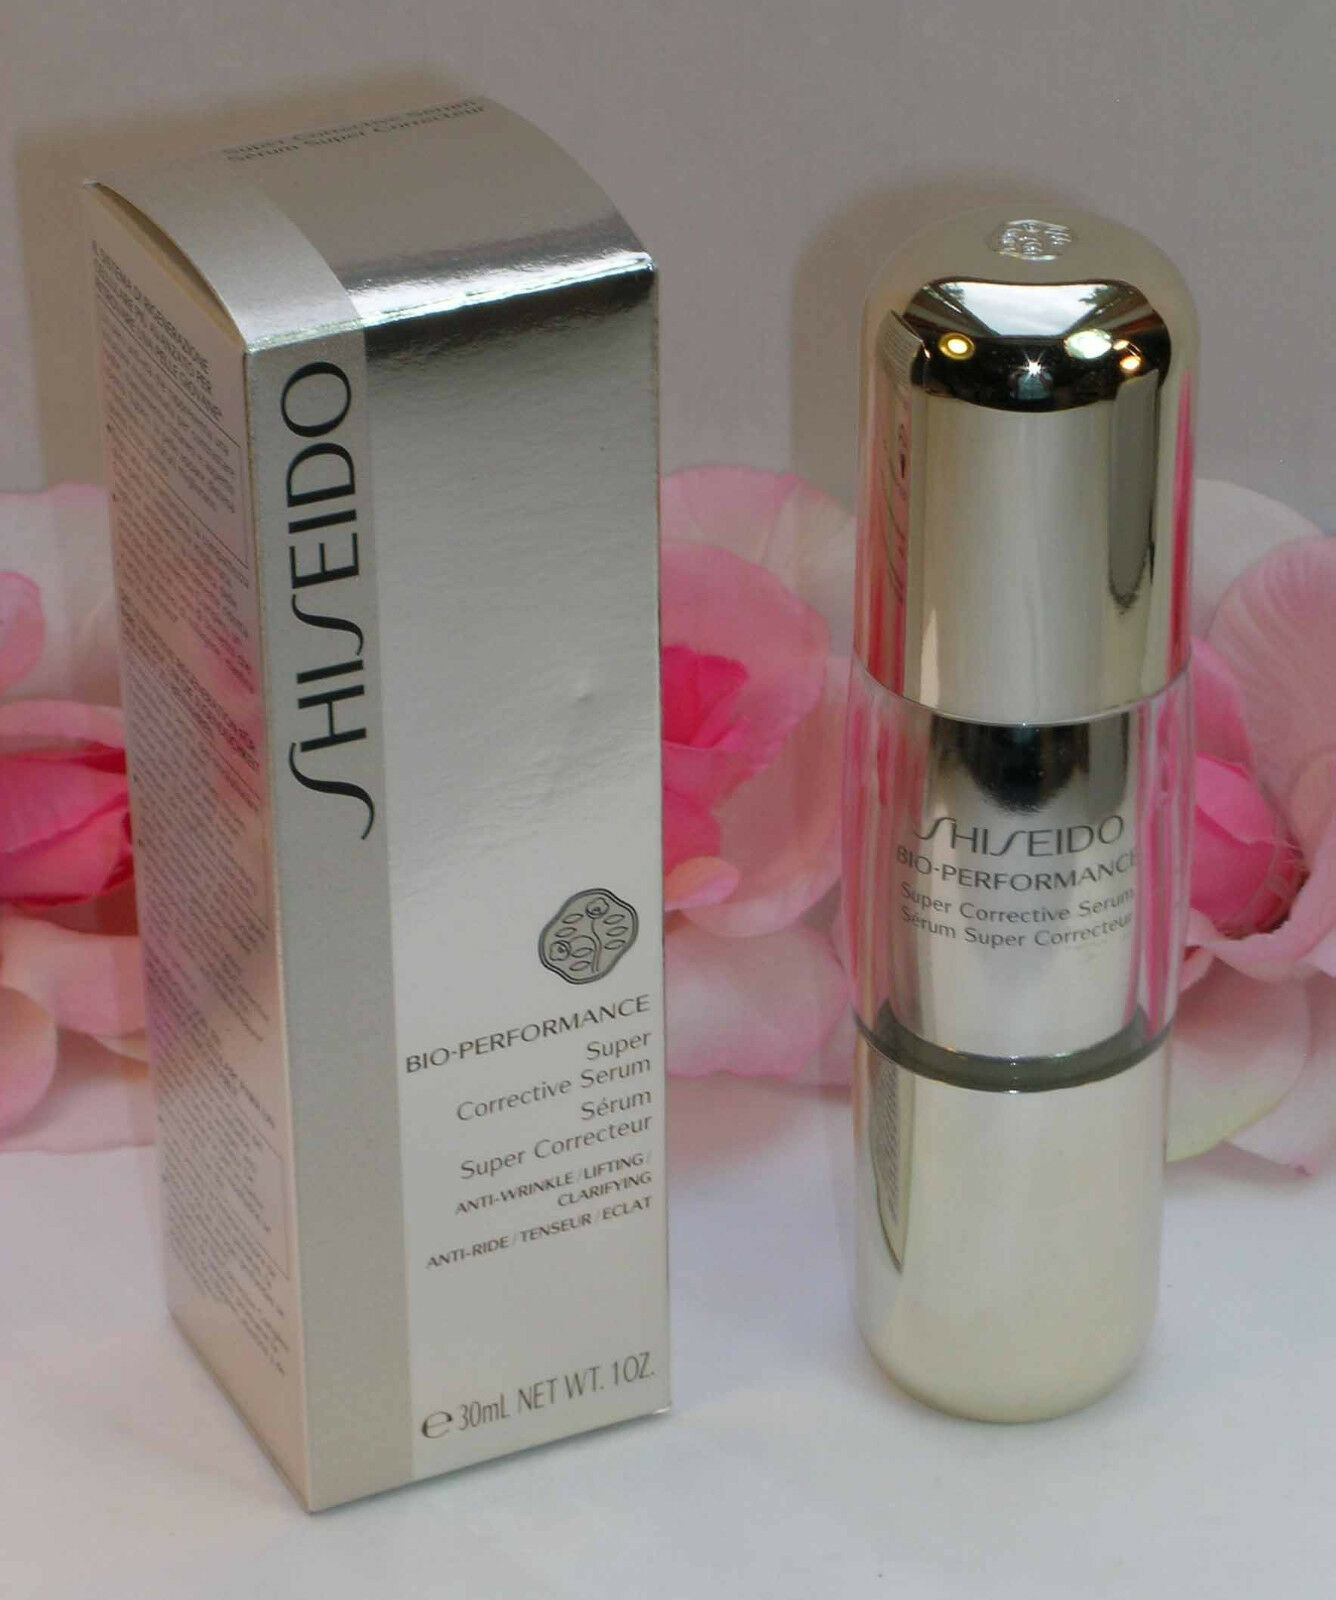 Primary image for New Shiseido Bio-Performance Super Corrective Serum 1 oz / 30 ml Full Size